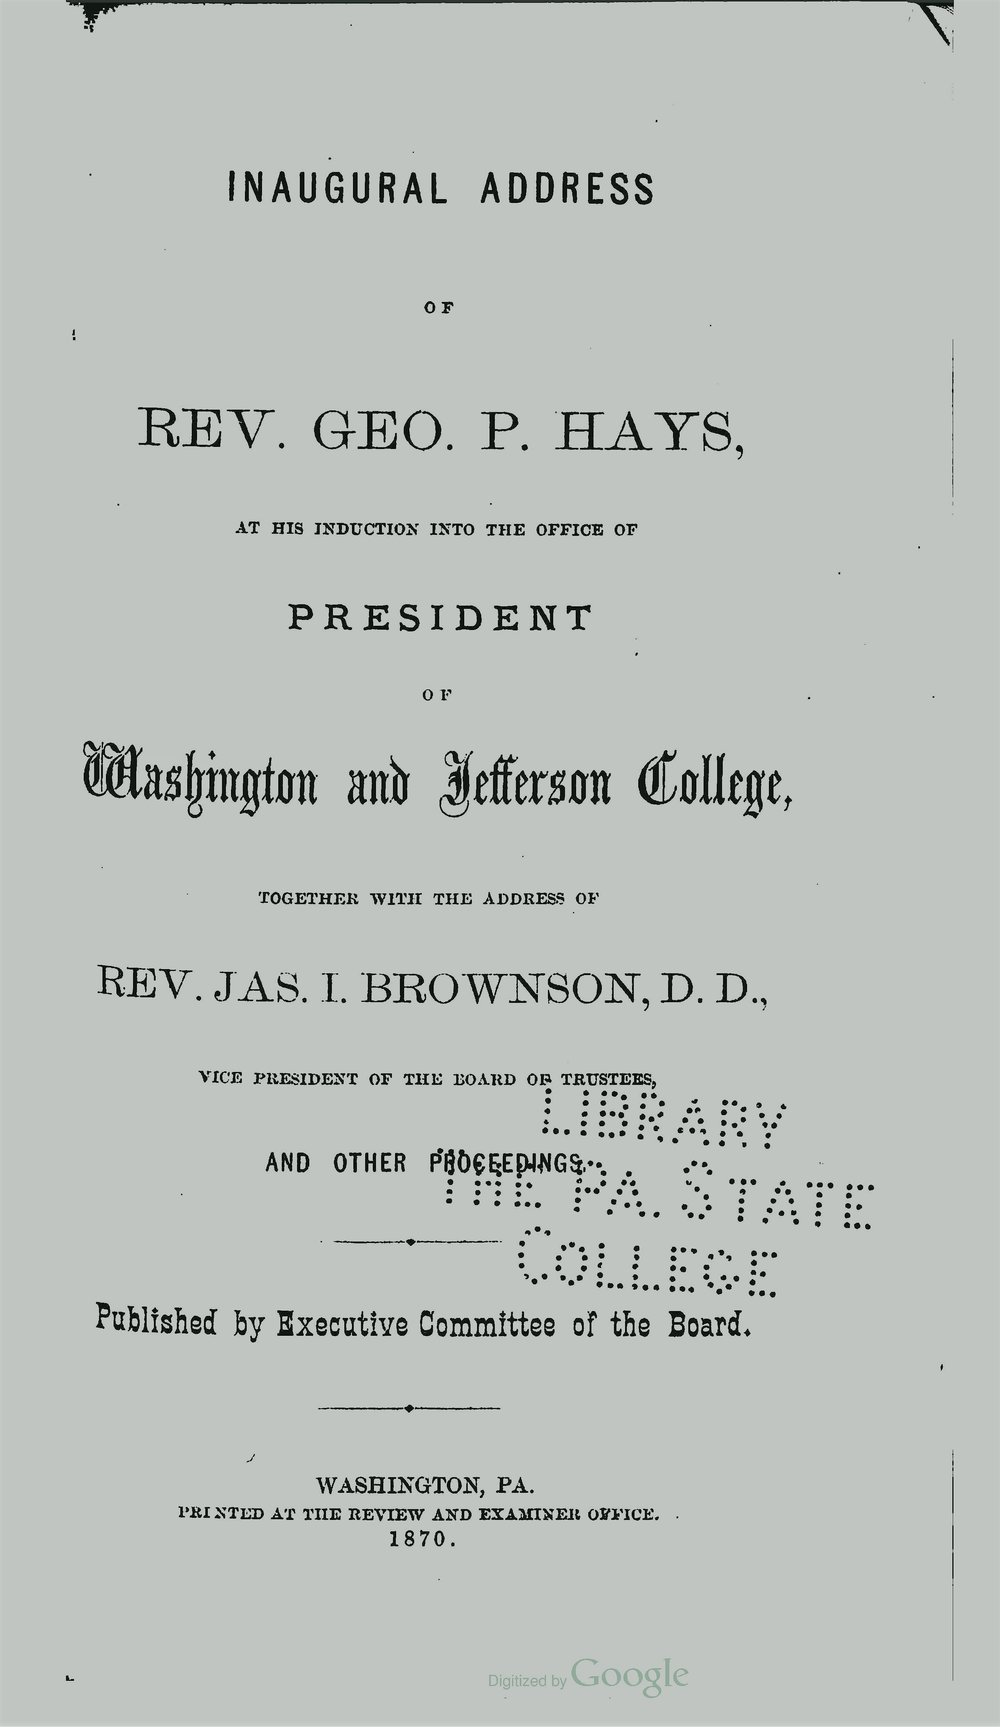 Hays, George Price, Inaugural Address of Rev George P Hays Title Page.jpg